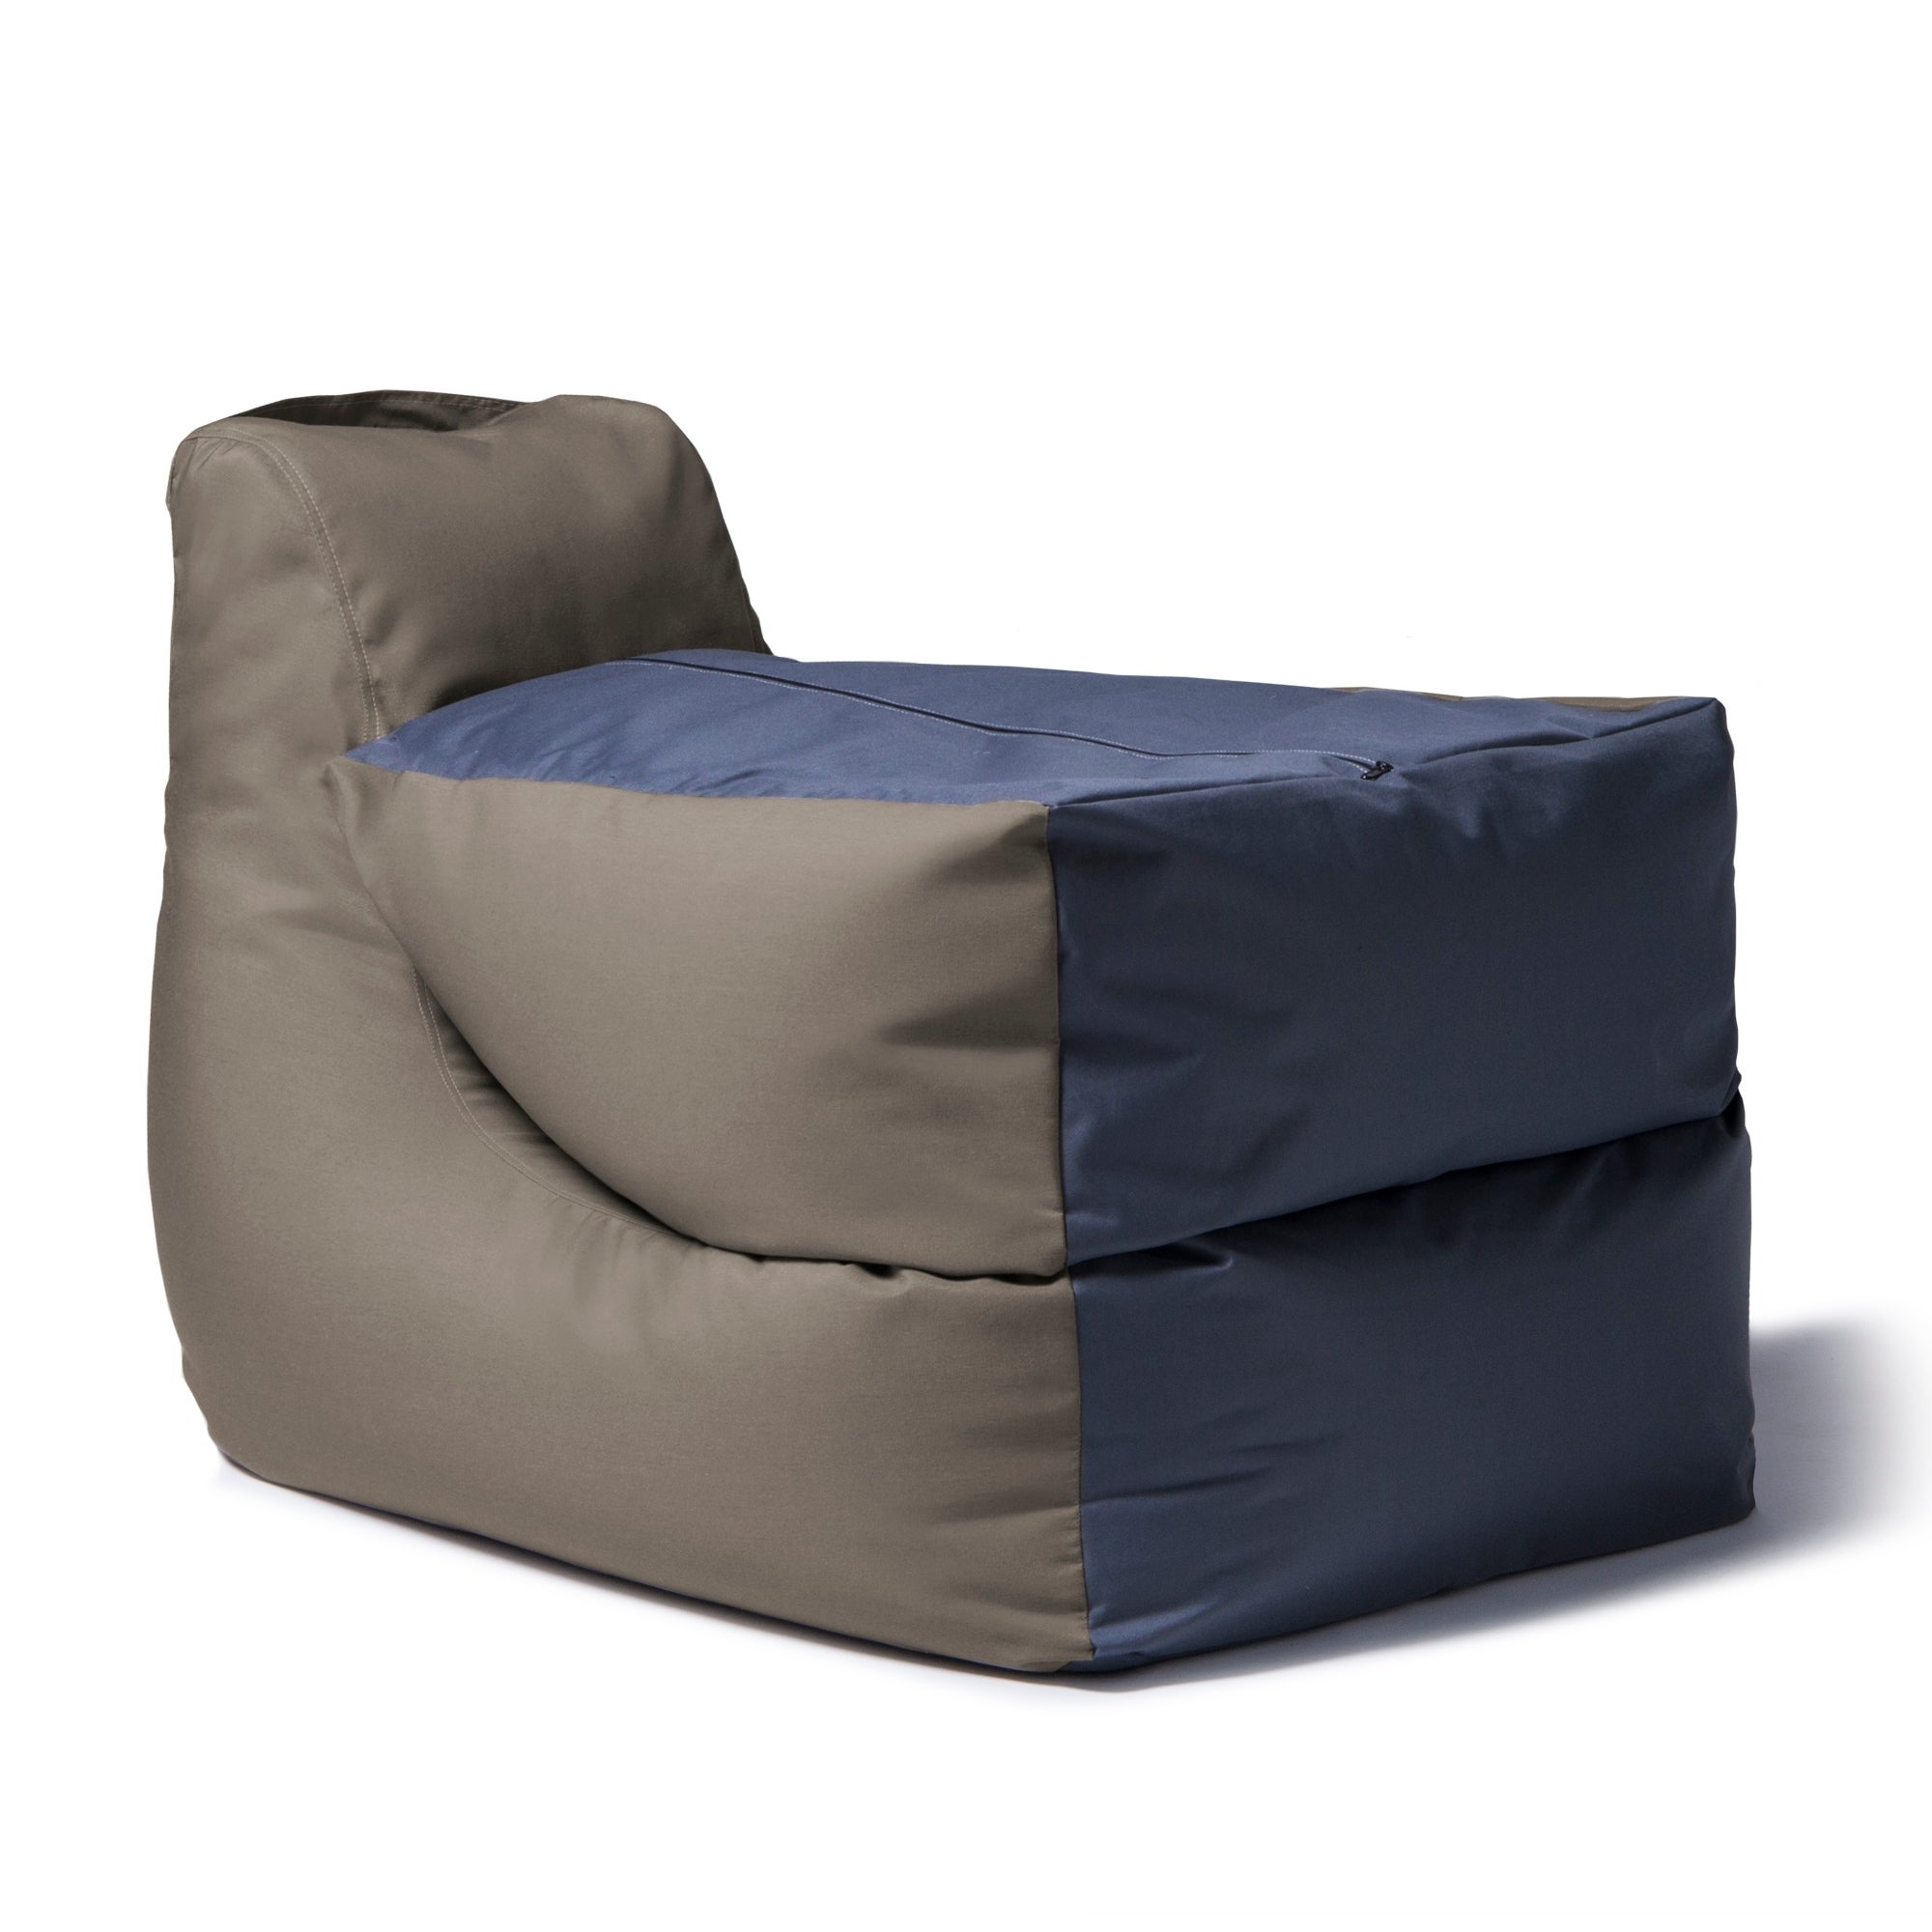 Best And Newest Jaxx Prado Patio Bean Bag Chaise Lounge Intended For Patio Bean Bag Chaise Lounges (View 13 of 25)